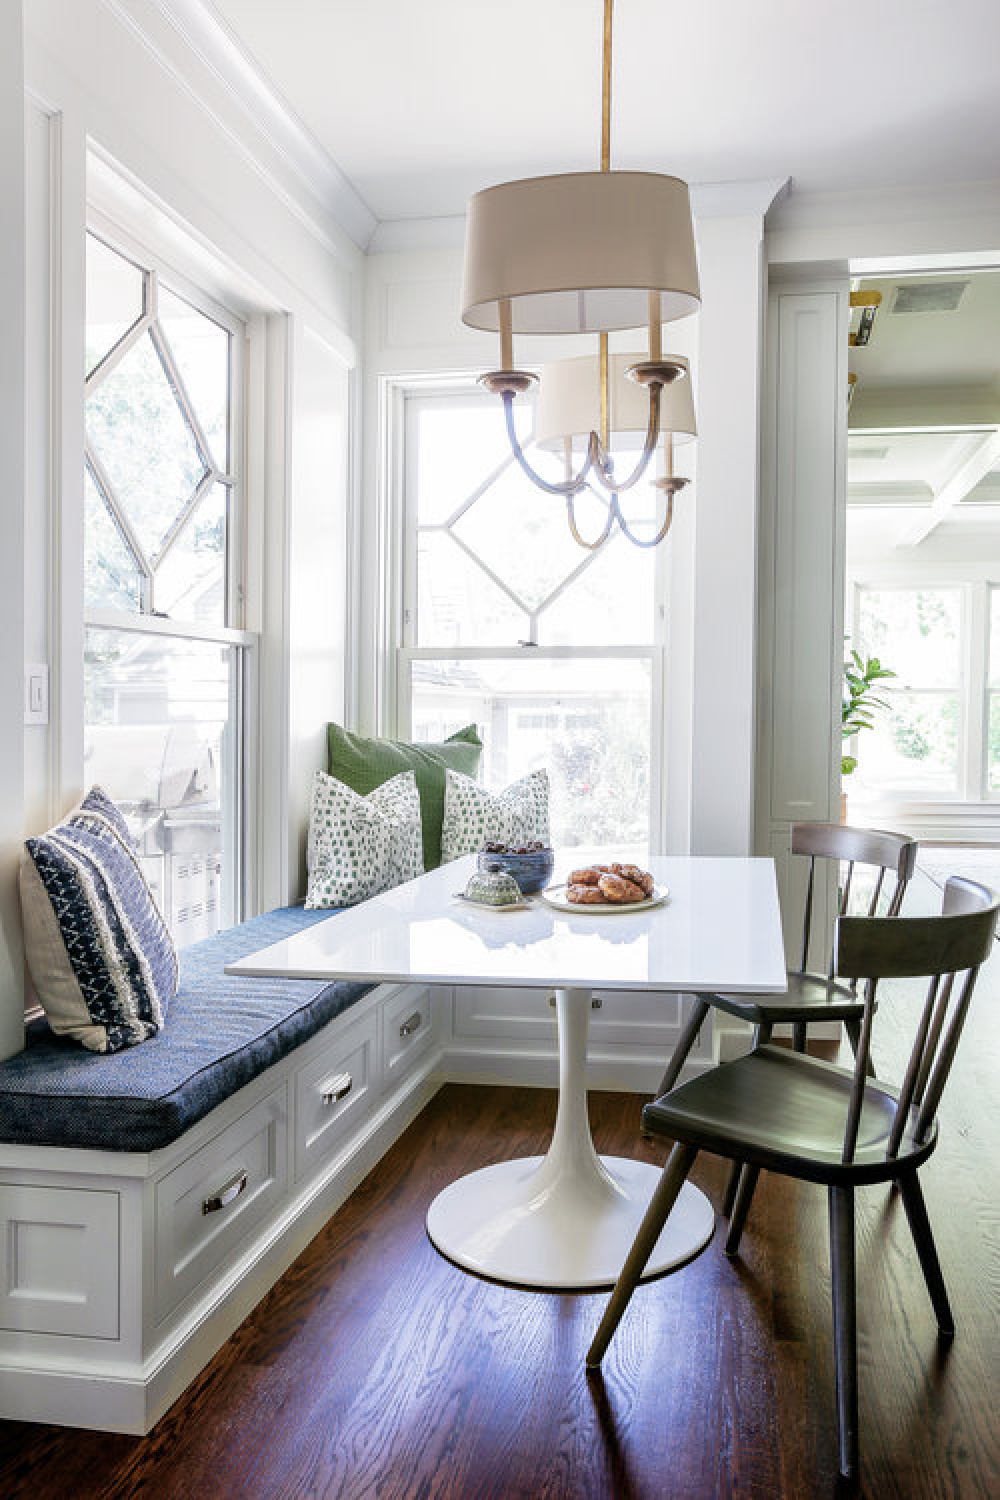 Classic style in a breakfast nook of a traditional white kitchen with blue accents, custom millwork, and built-in window seat - Edward Deegan Architects.